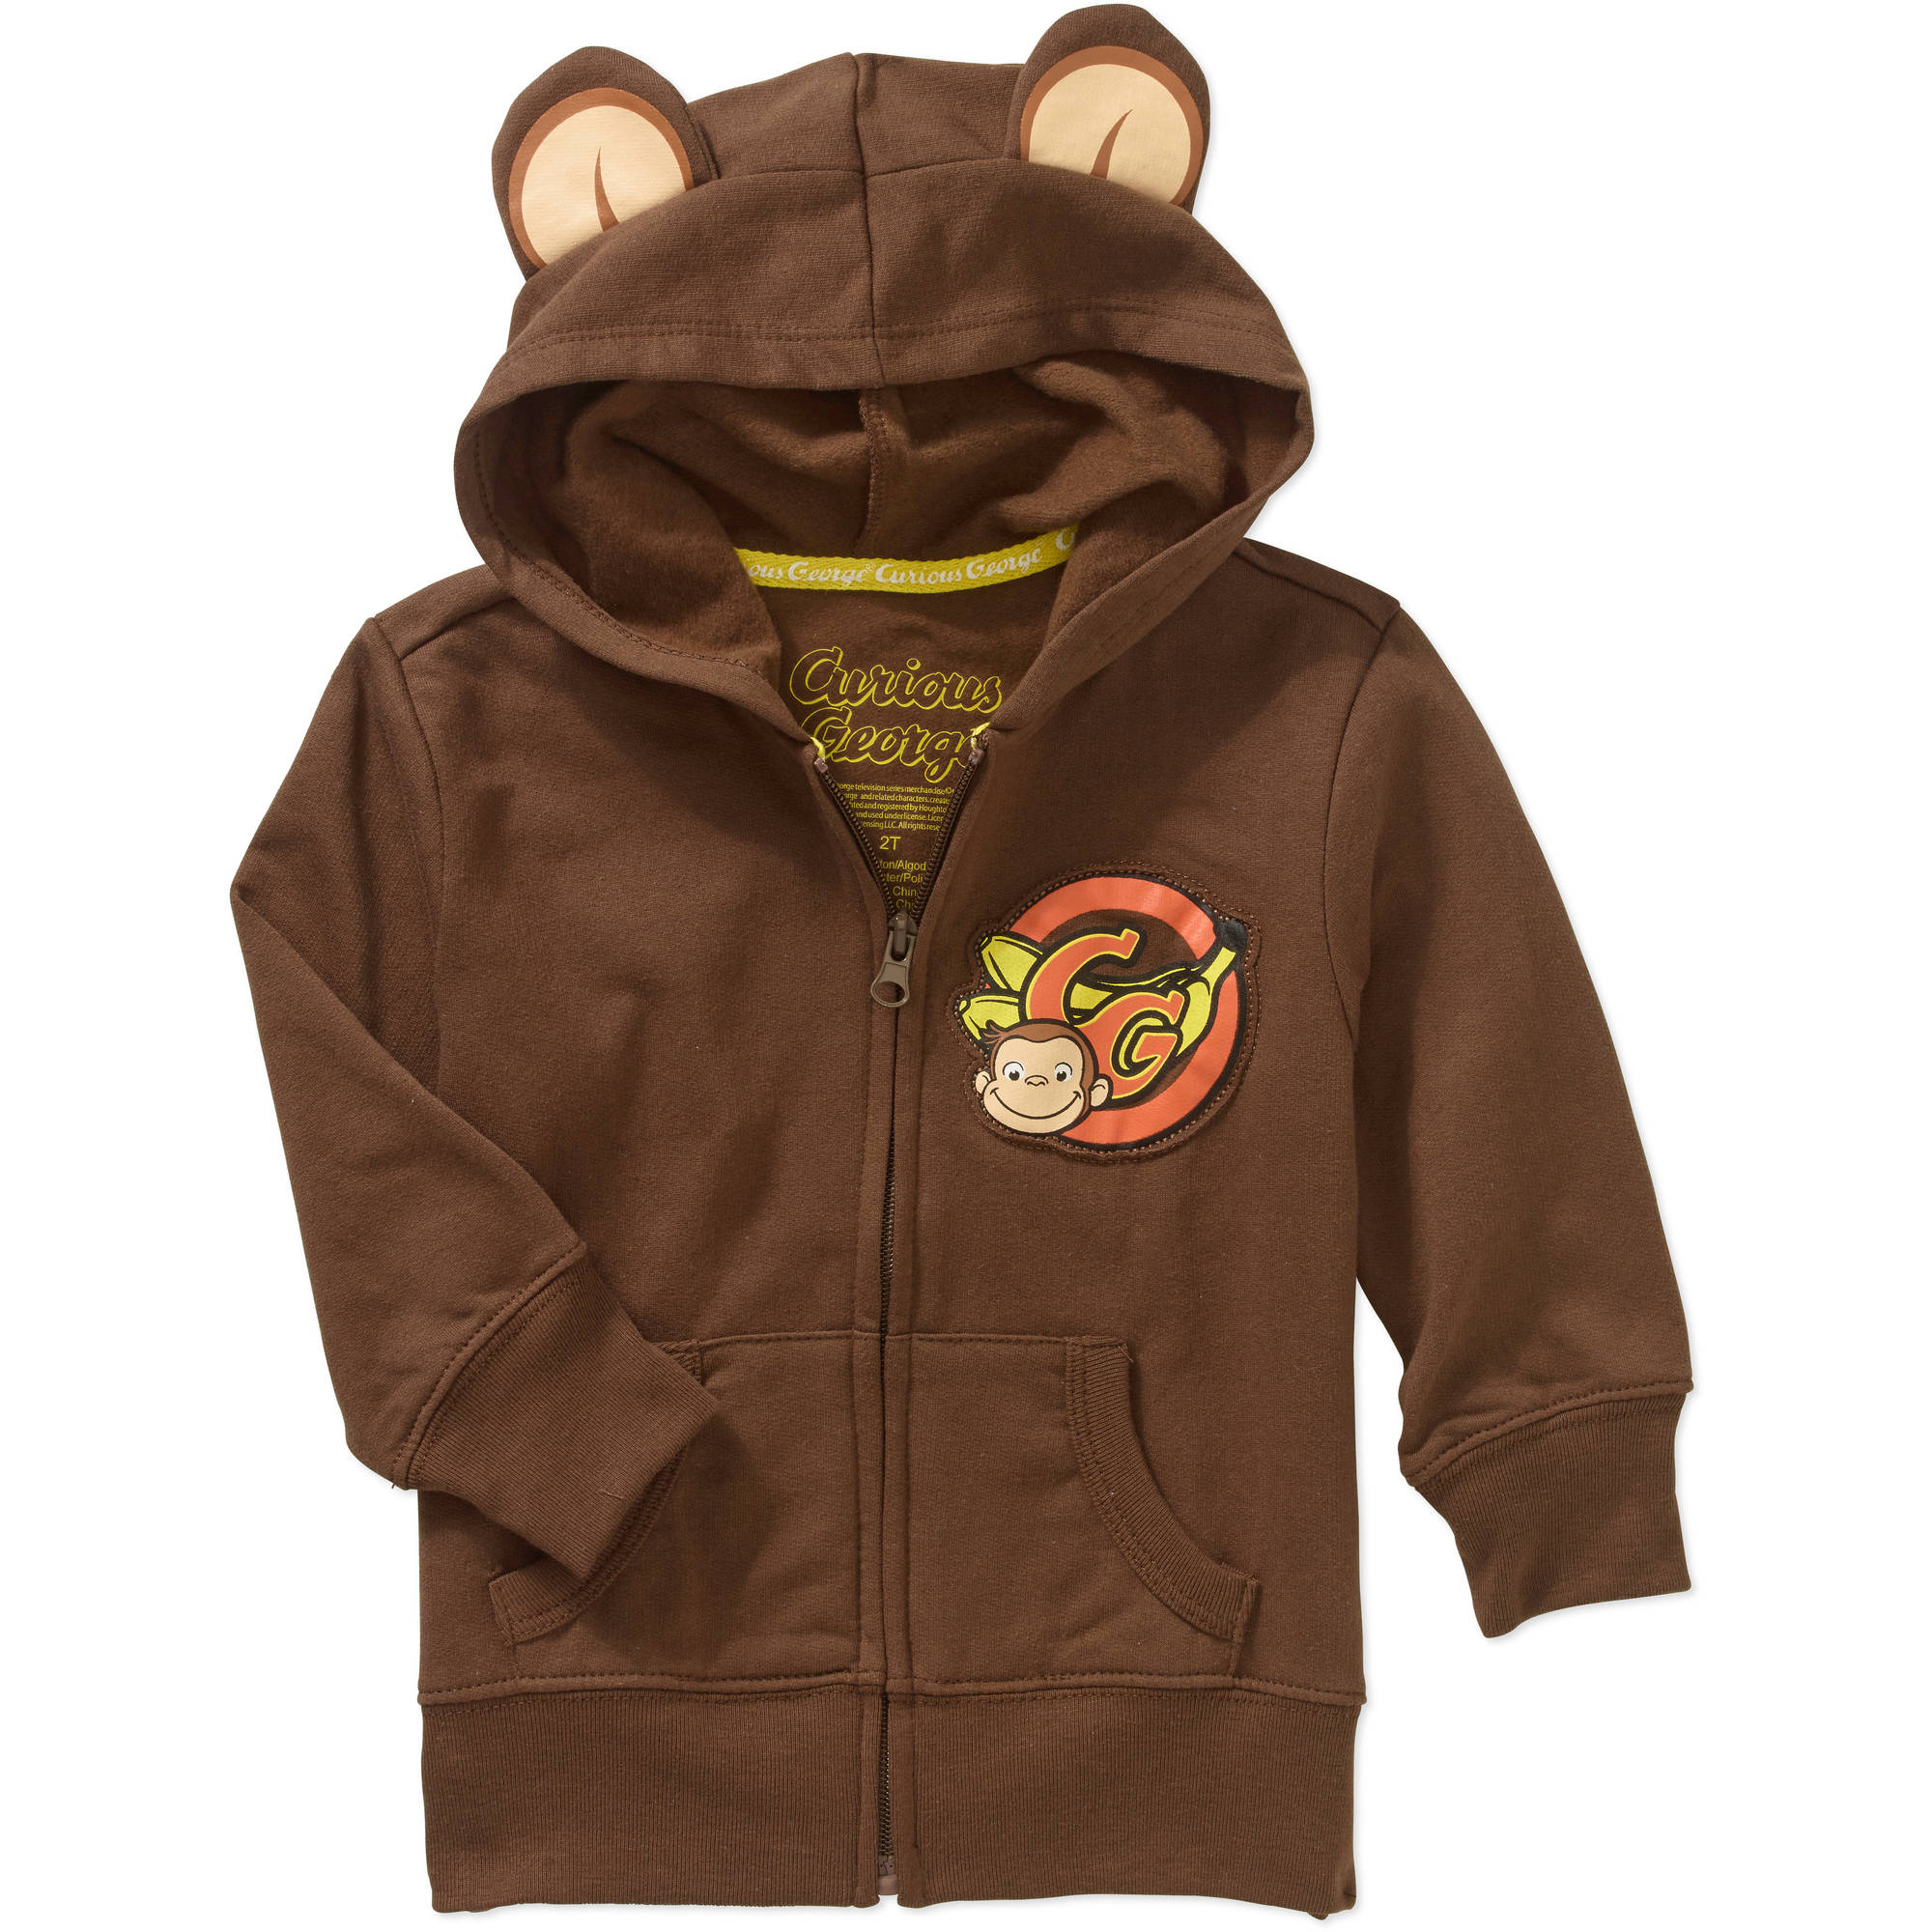 Toddler Boys' 3-D Eared Graphic Hoodie